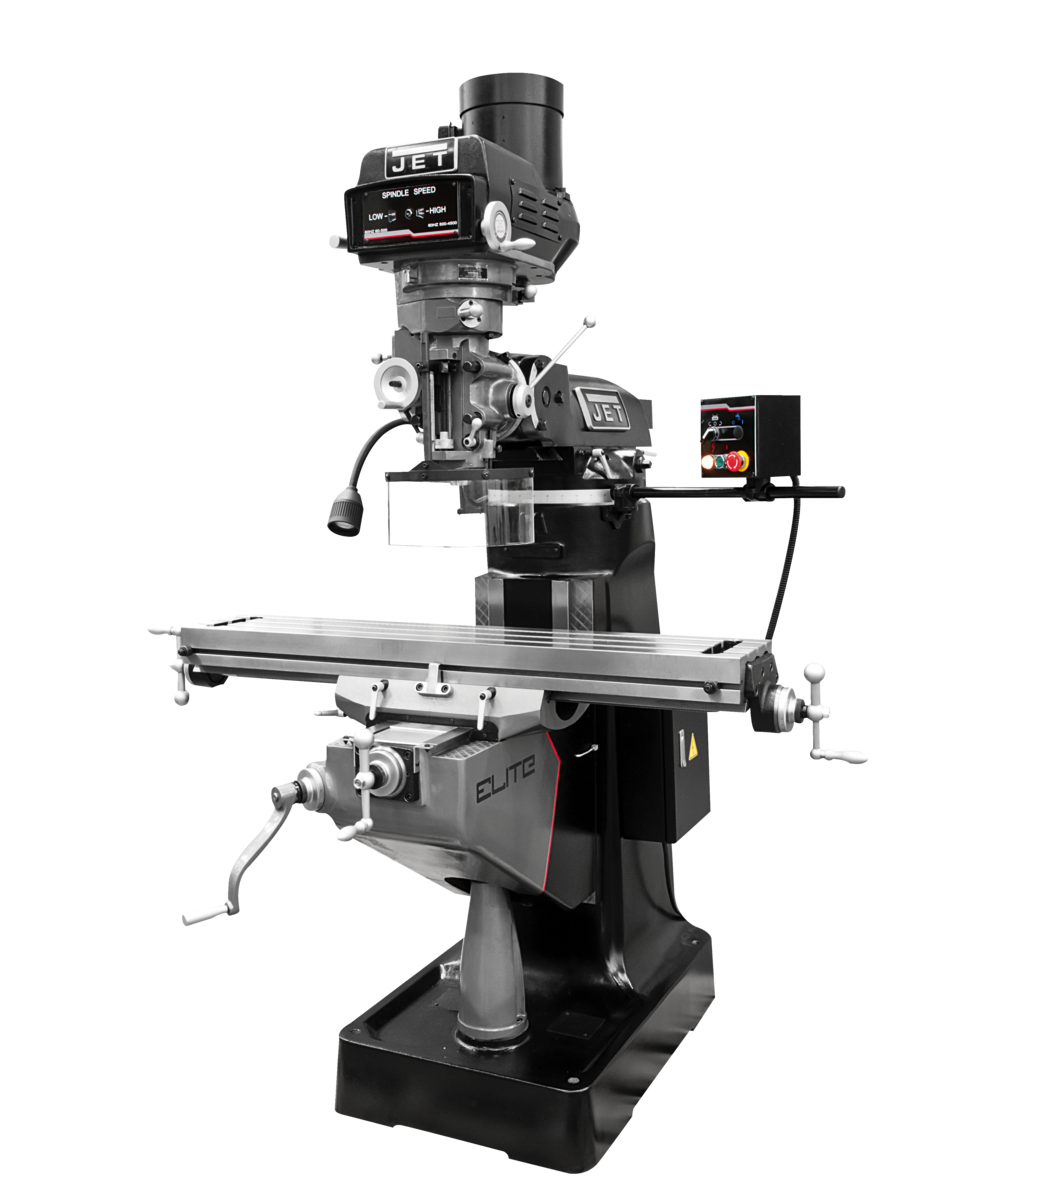 ETM-949 Mill with 2-Axis ACU-RITE 303  DRO and Servo X, Y-Axis Powerfeeds and USA Air Powered Draw Bar